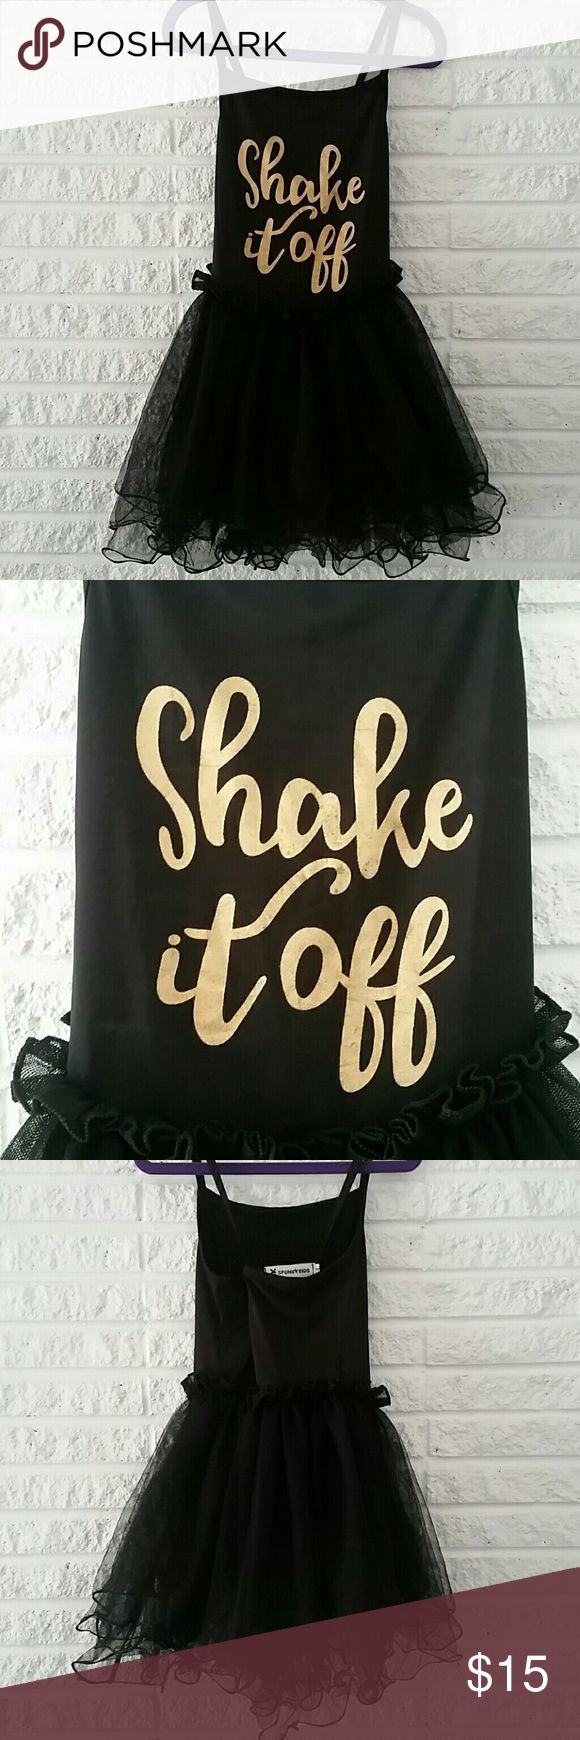 Girls black dance leotard with Gold Script Such an adorable dance leotard, the skirt has many layers of tool material with the traditional black leotard attached underneath. It crosses in the back and is made of stretchy spandex material. 5k Spunky Kids Costumes Dance